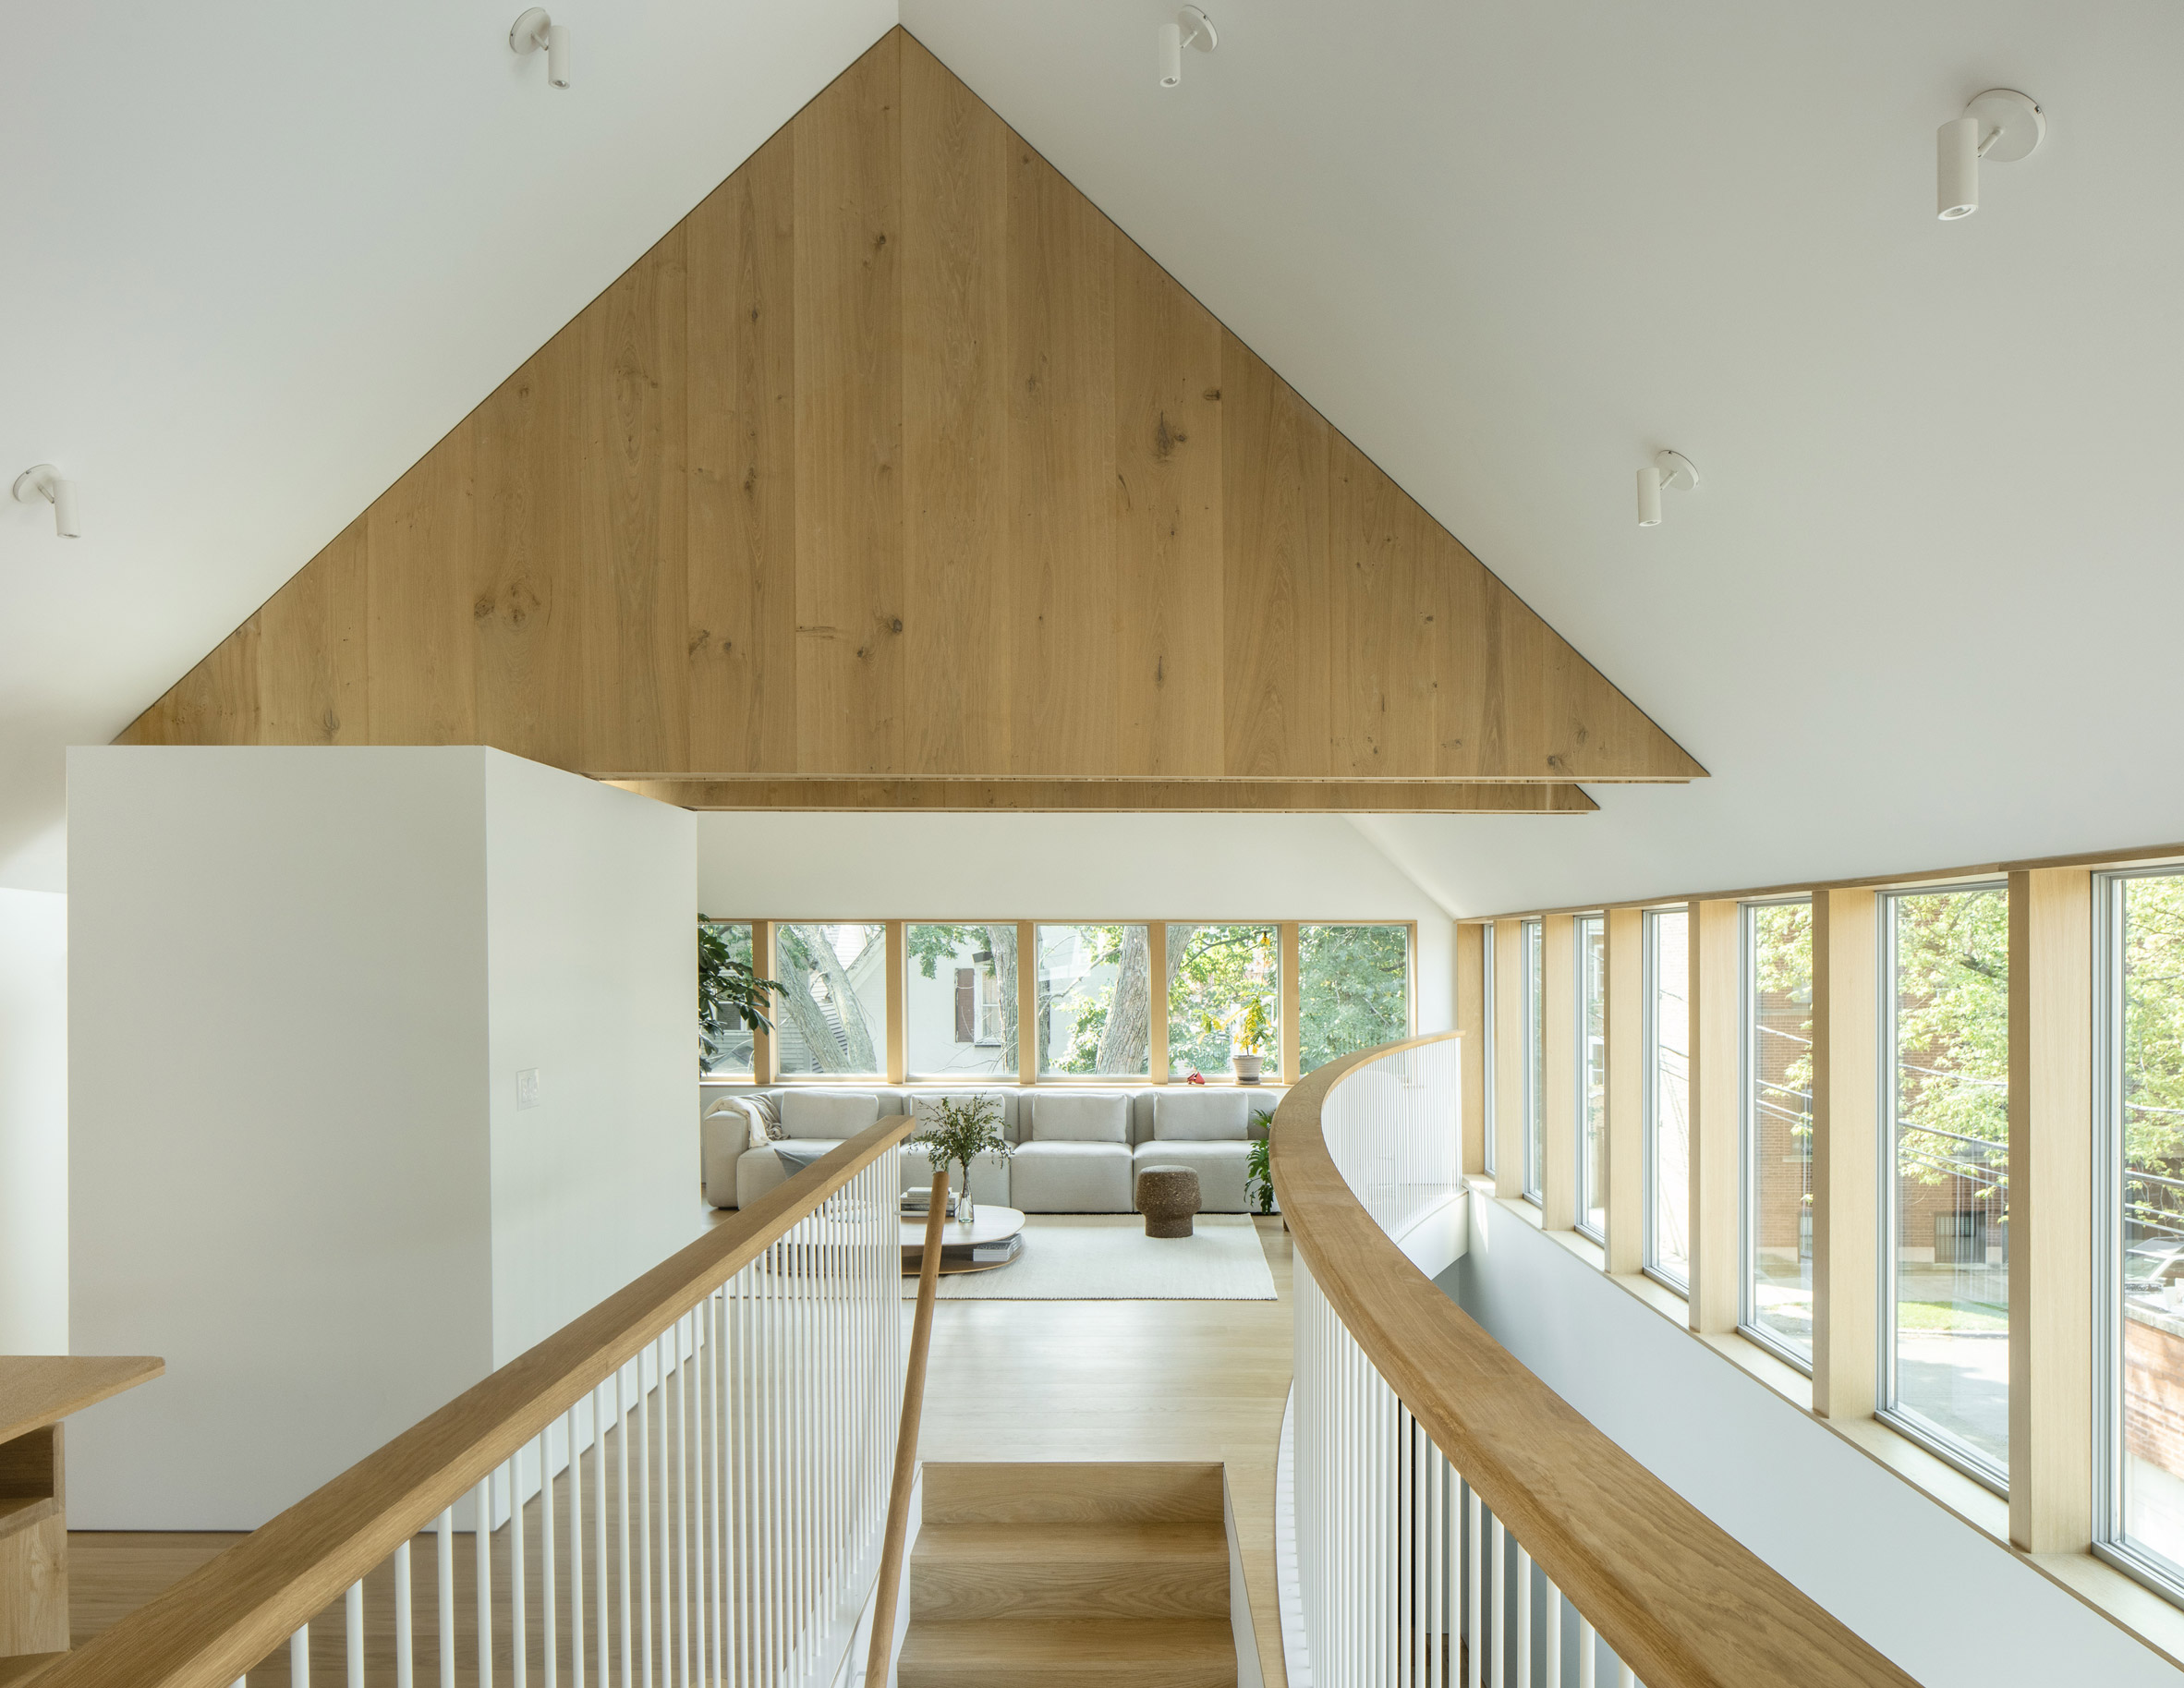 Triangular trusses in Ardmore House by Kwong Von Glinow